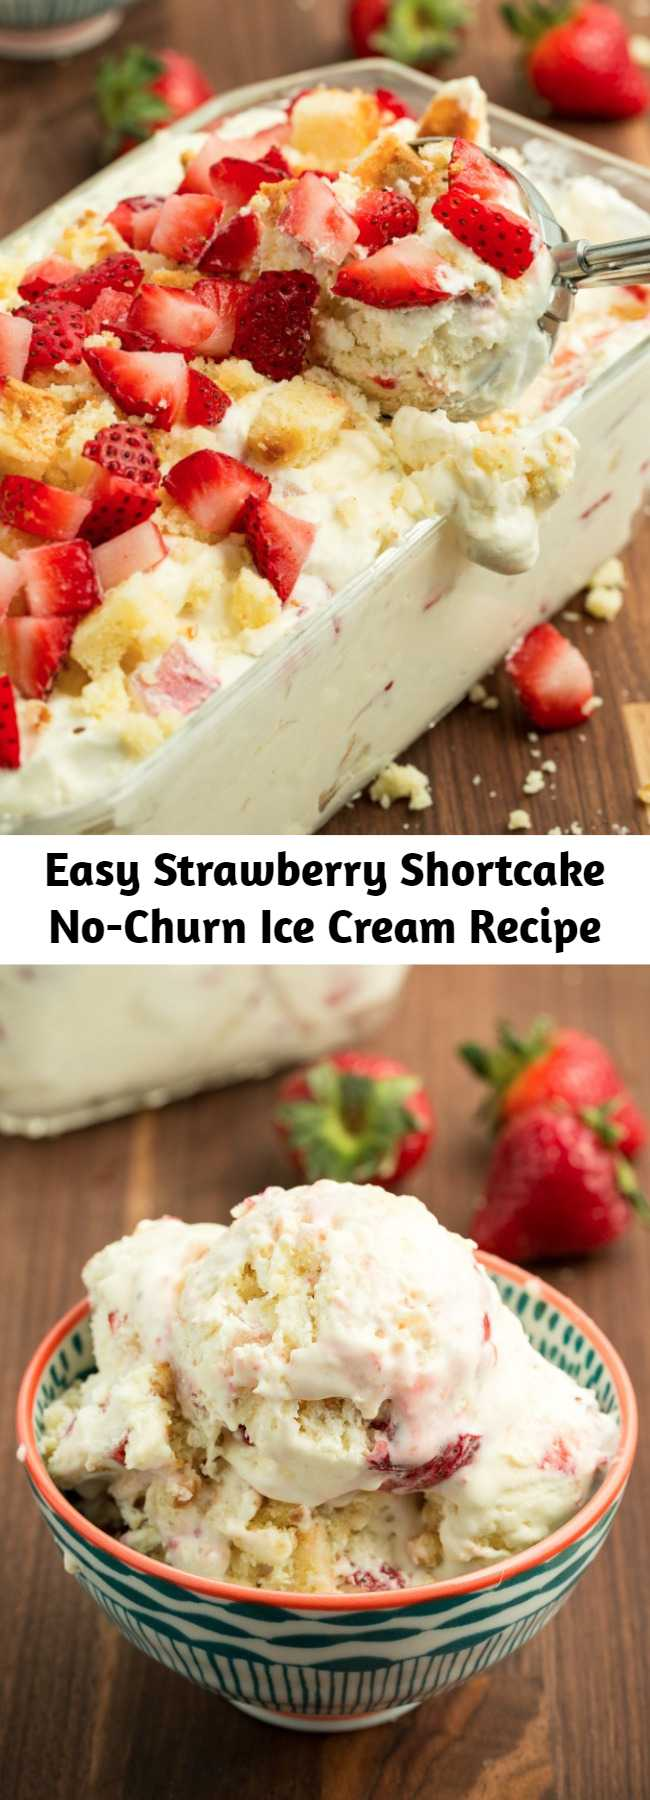 Easy Strawberry Shortcake No-Churn Ice Cream Recipe - Our strawberry shortcake ice cream is the best way to eat strawberries right now. It has five ingredients and takes 10 minutes to make. This no-churn ice cream tastes like love at first sight.